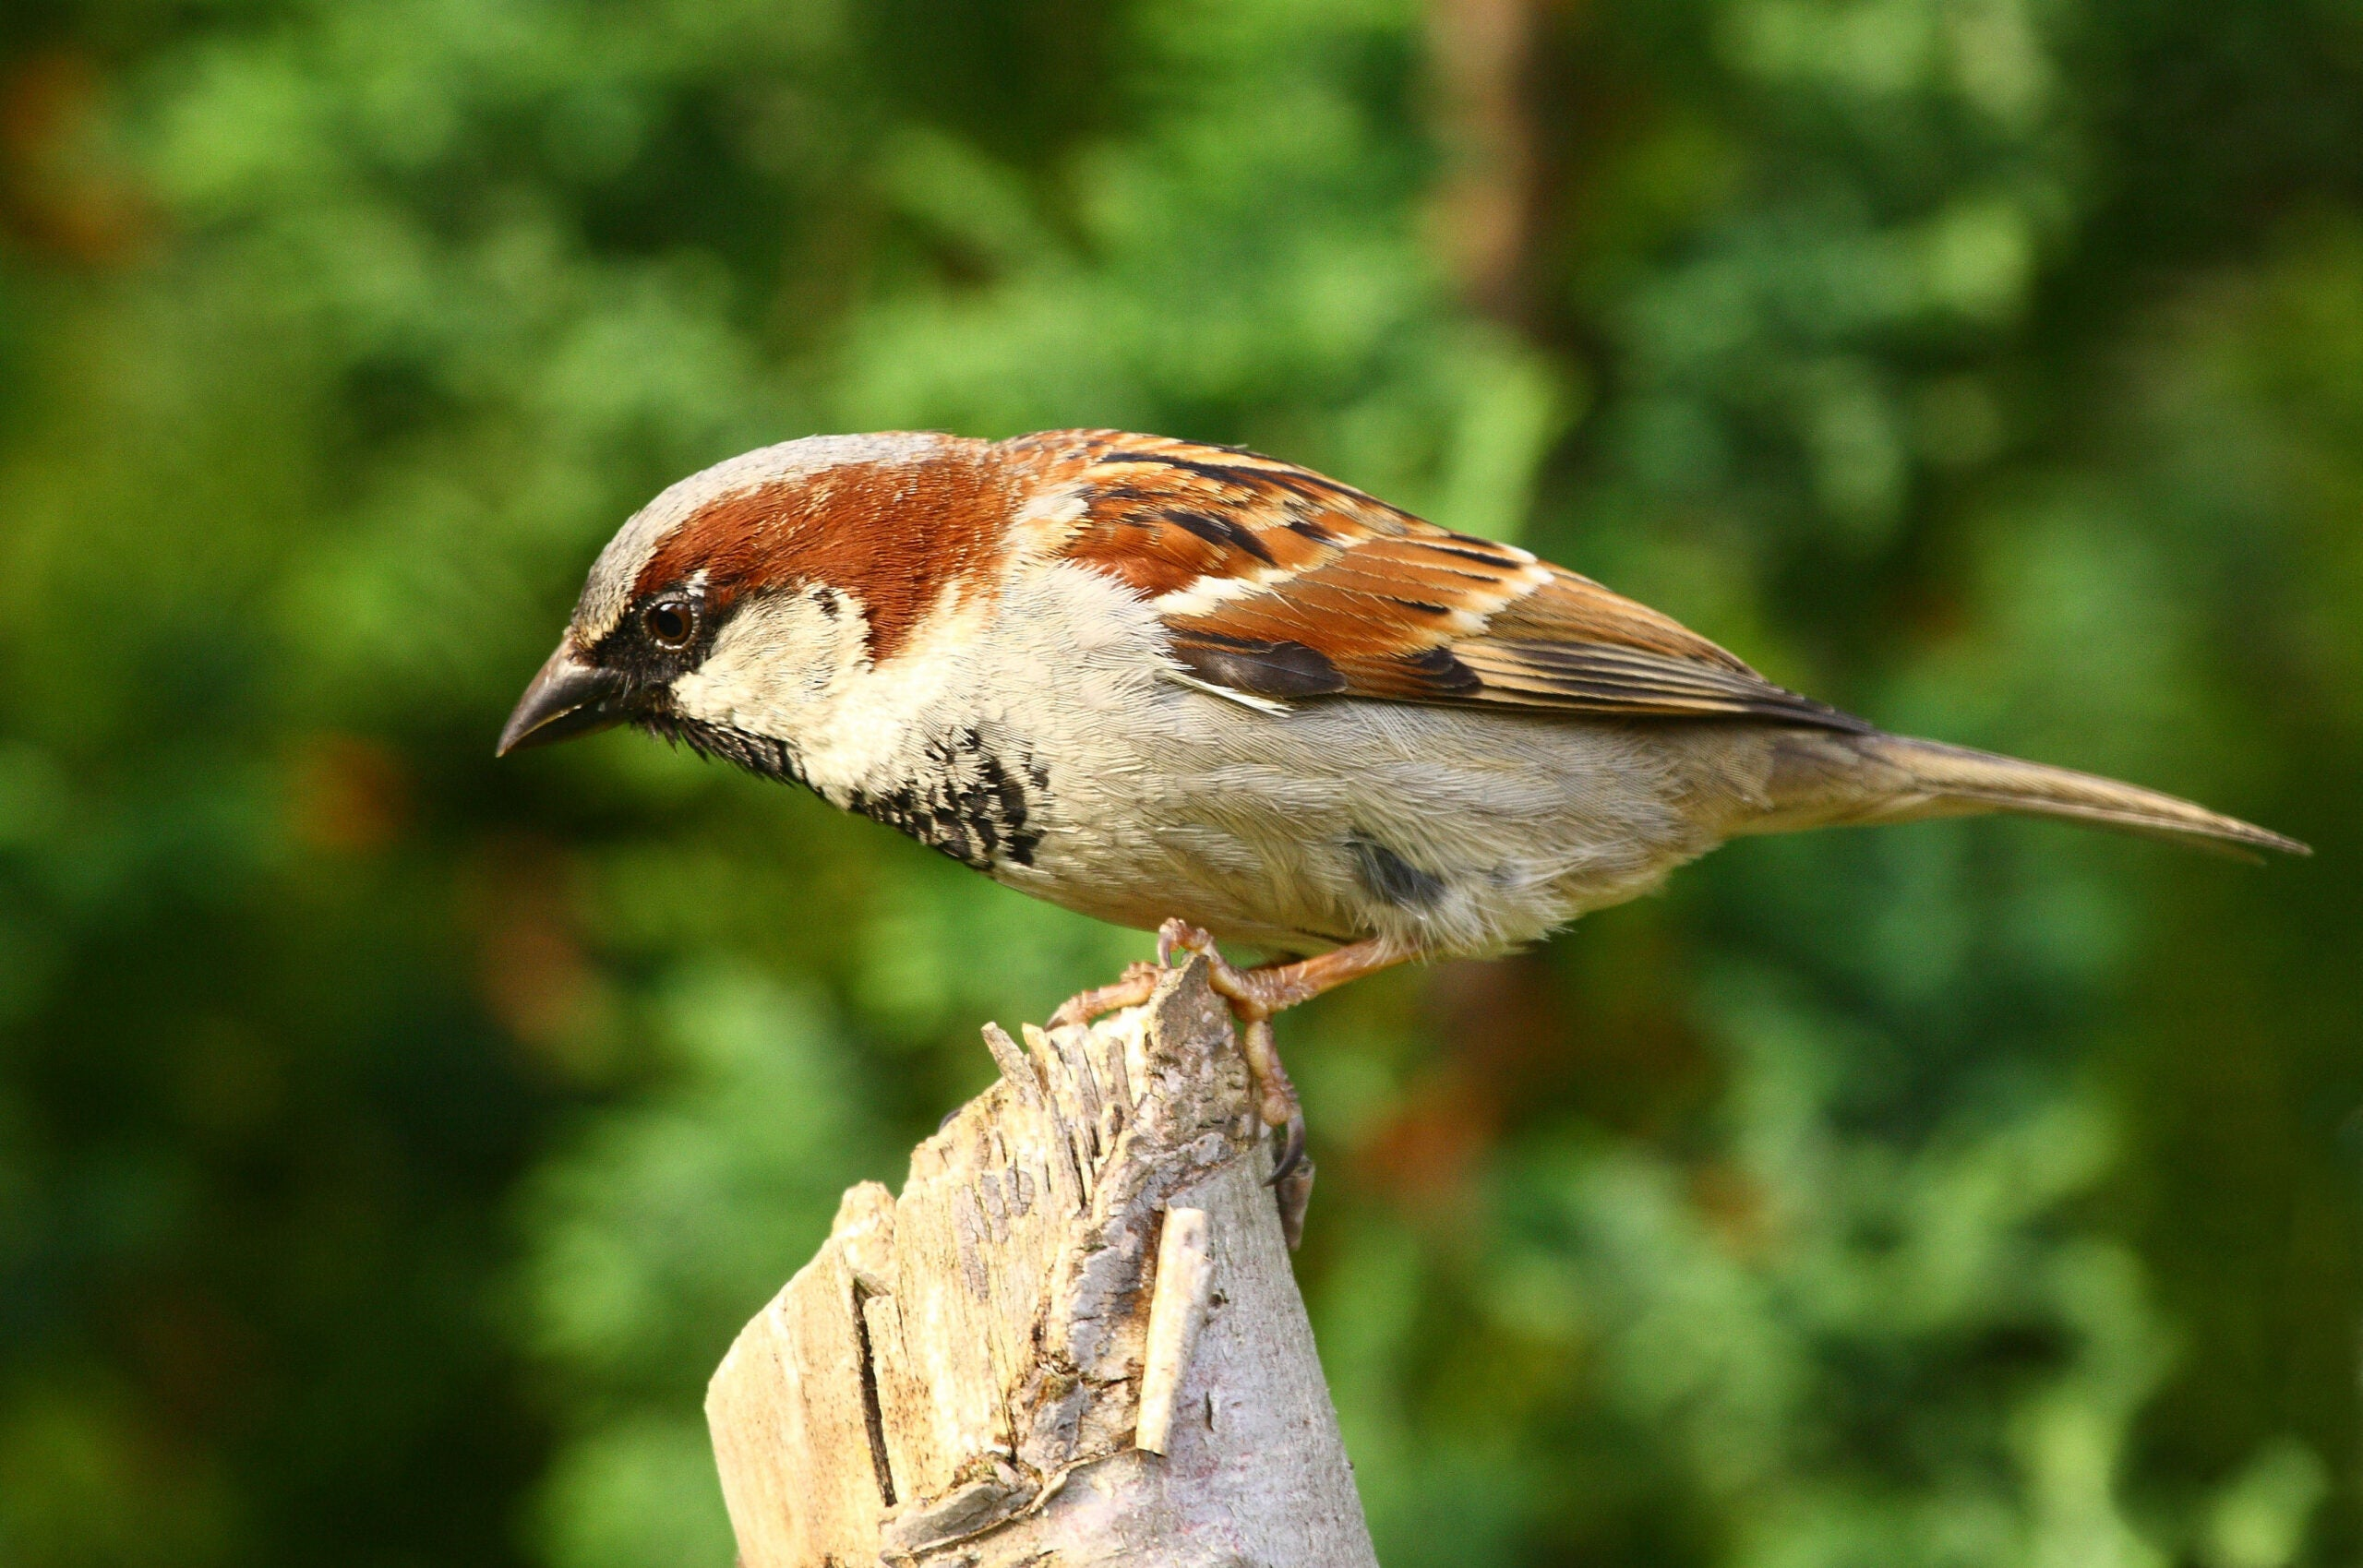 Promiscuous Sparrow Wives May Cause Deadbeat Sparrow Dads